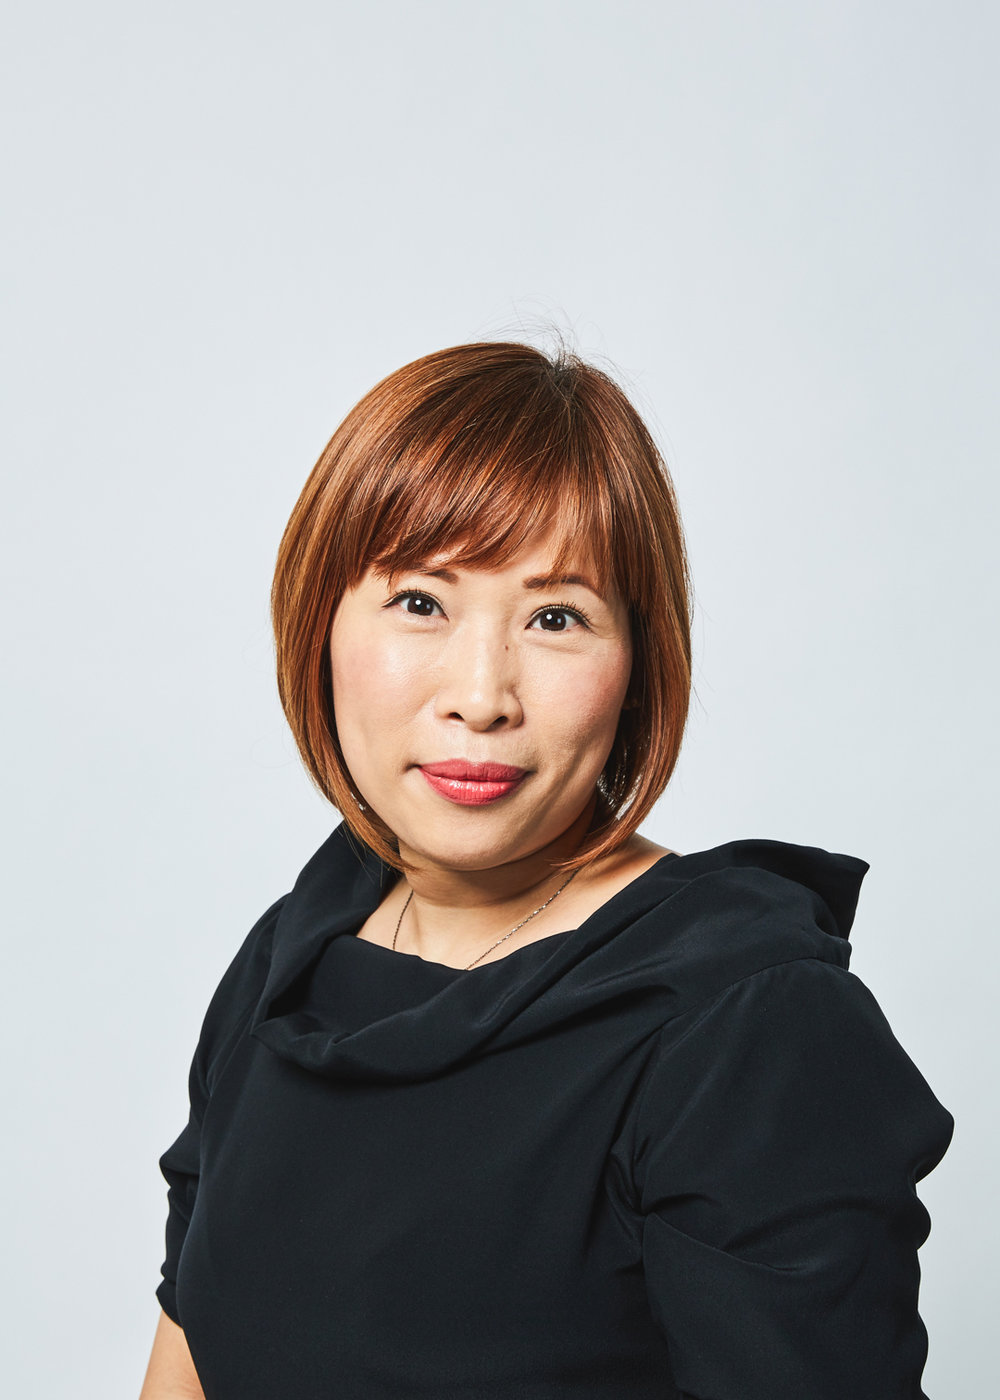 "JOO - With over 23 years of experience, Joo understands the art of gorgeous hair. She has a gift for assessing a person's facial features and personality to deliver the perfect shade and cut. She is also skilled at working with the nuances of Asian hair. Joo values the bond she has with her regulars, appreciating that their level of trust allows them to explore new ideas and techniques together. ""When a client shows happiness over the finished look, it reminds me that I have the best job in the world.""Book an appointment here!"